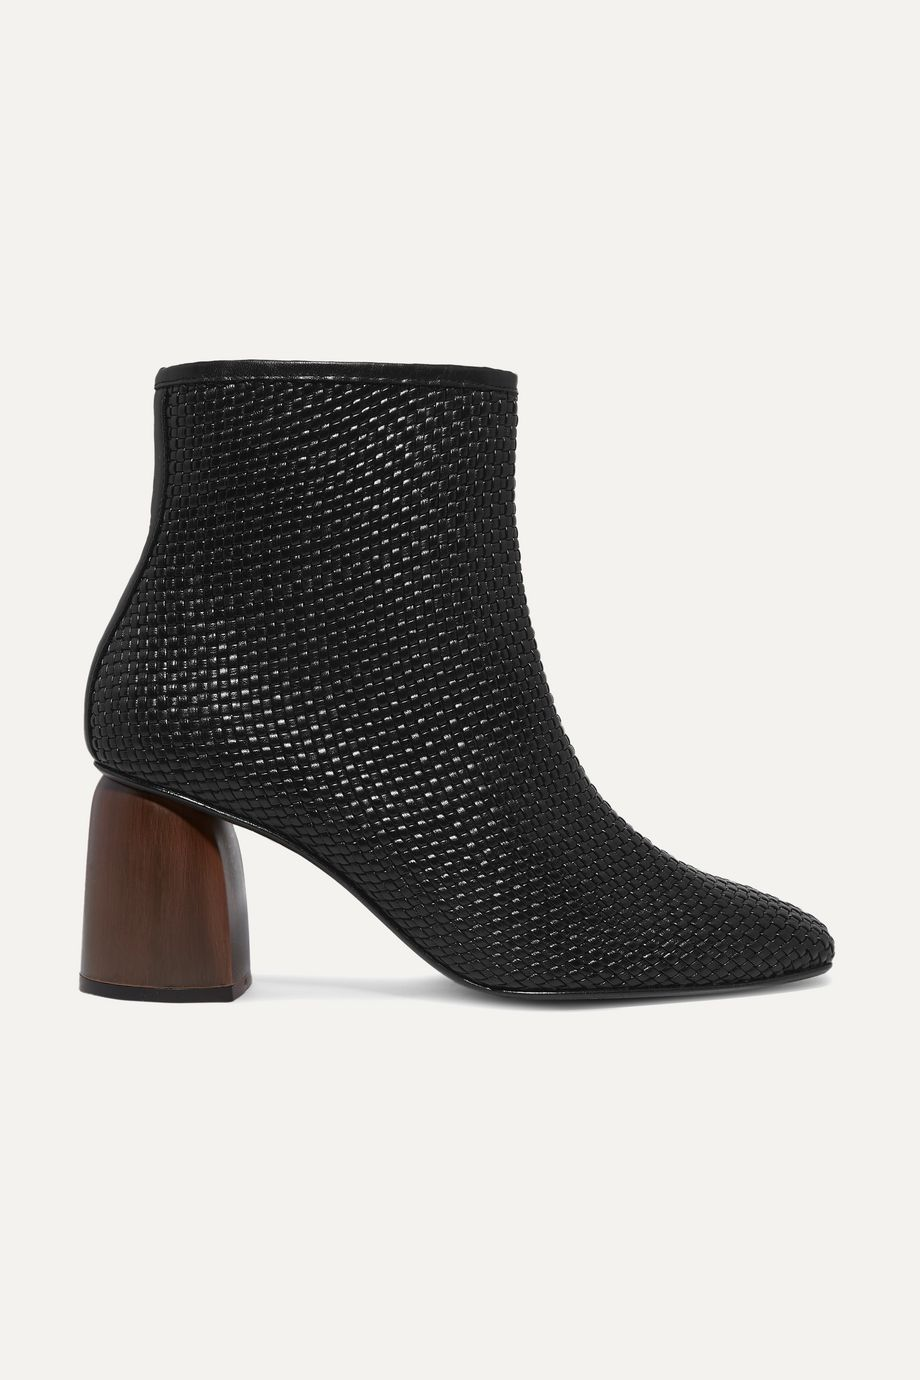 Souliers Martinez Pilar woven leather ankle boots